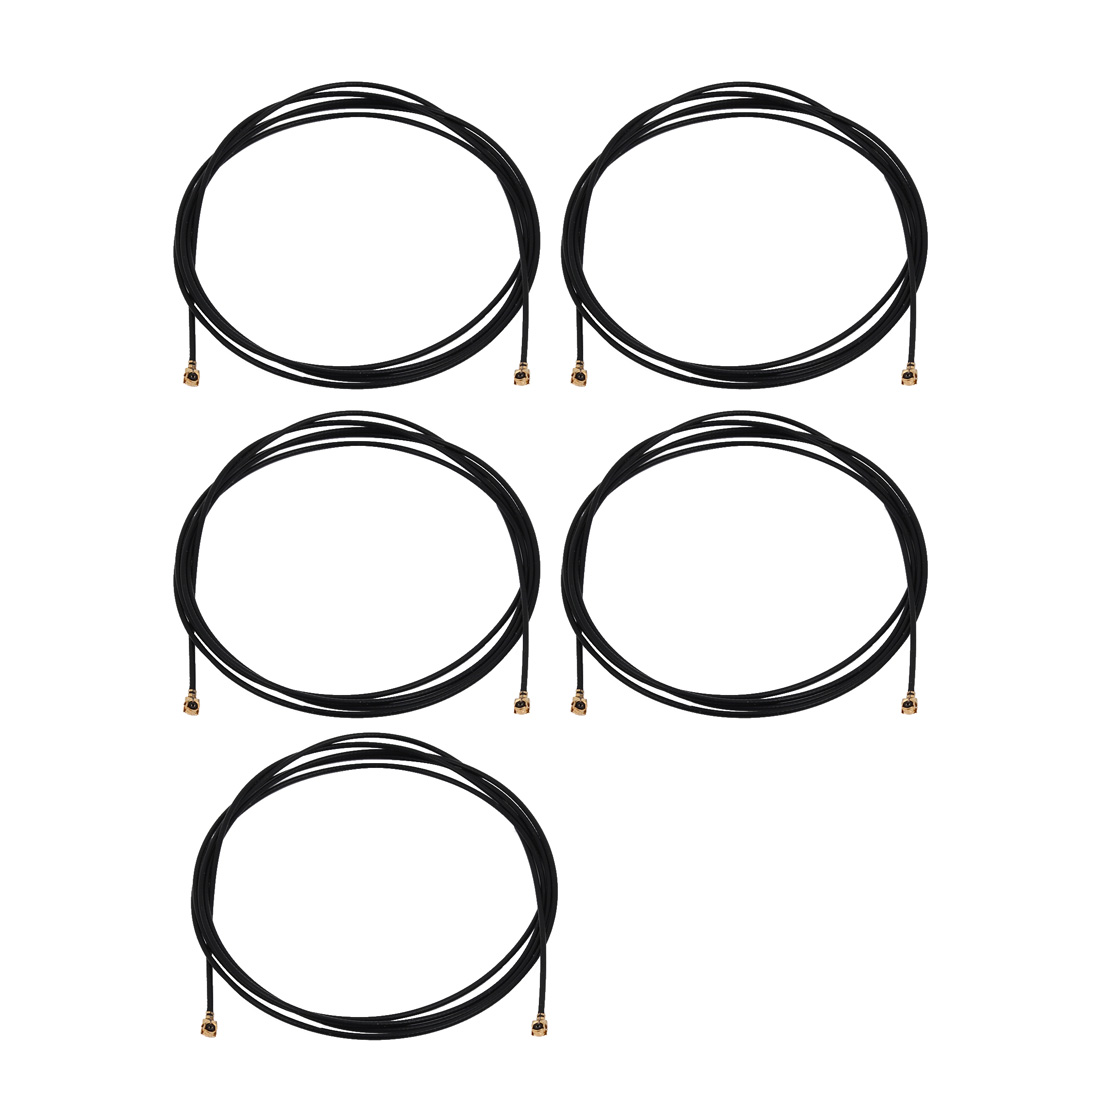 5pcs RF1.13 IPEX 1.0 to IPEX 1.0 Antenna WiFi Pigtail Cable 100cm for Router